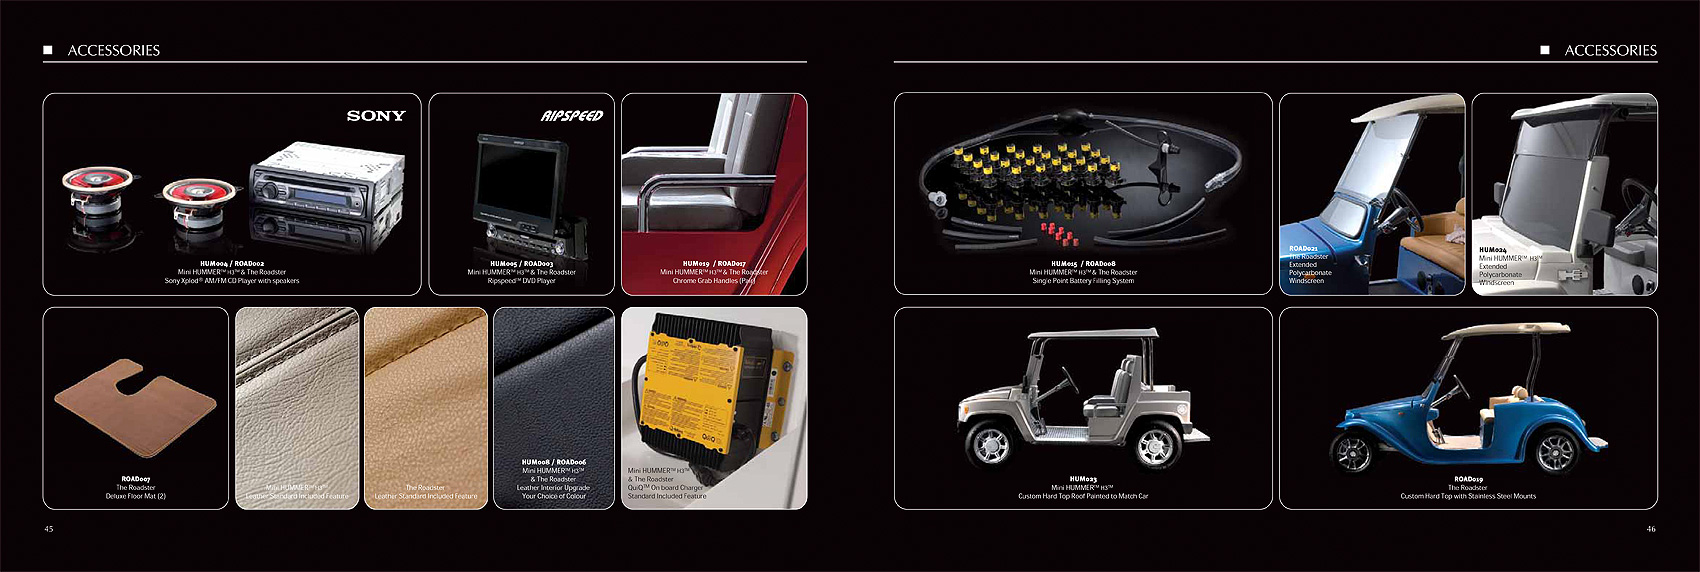 Hummer H3 accessories brochure photography